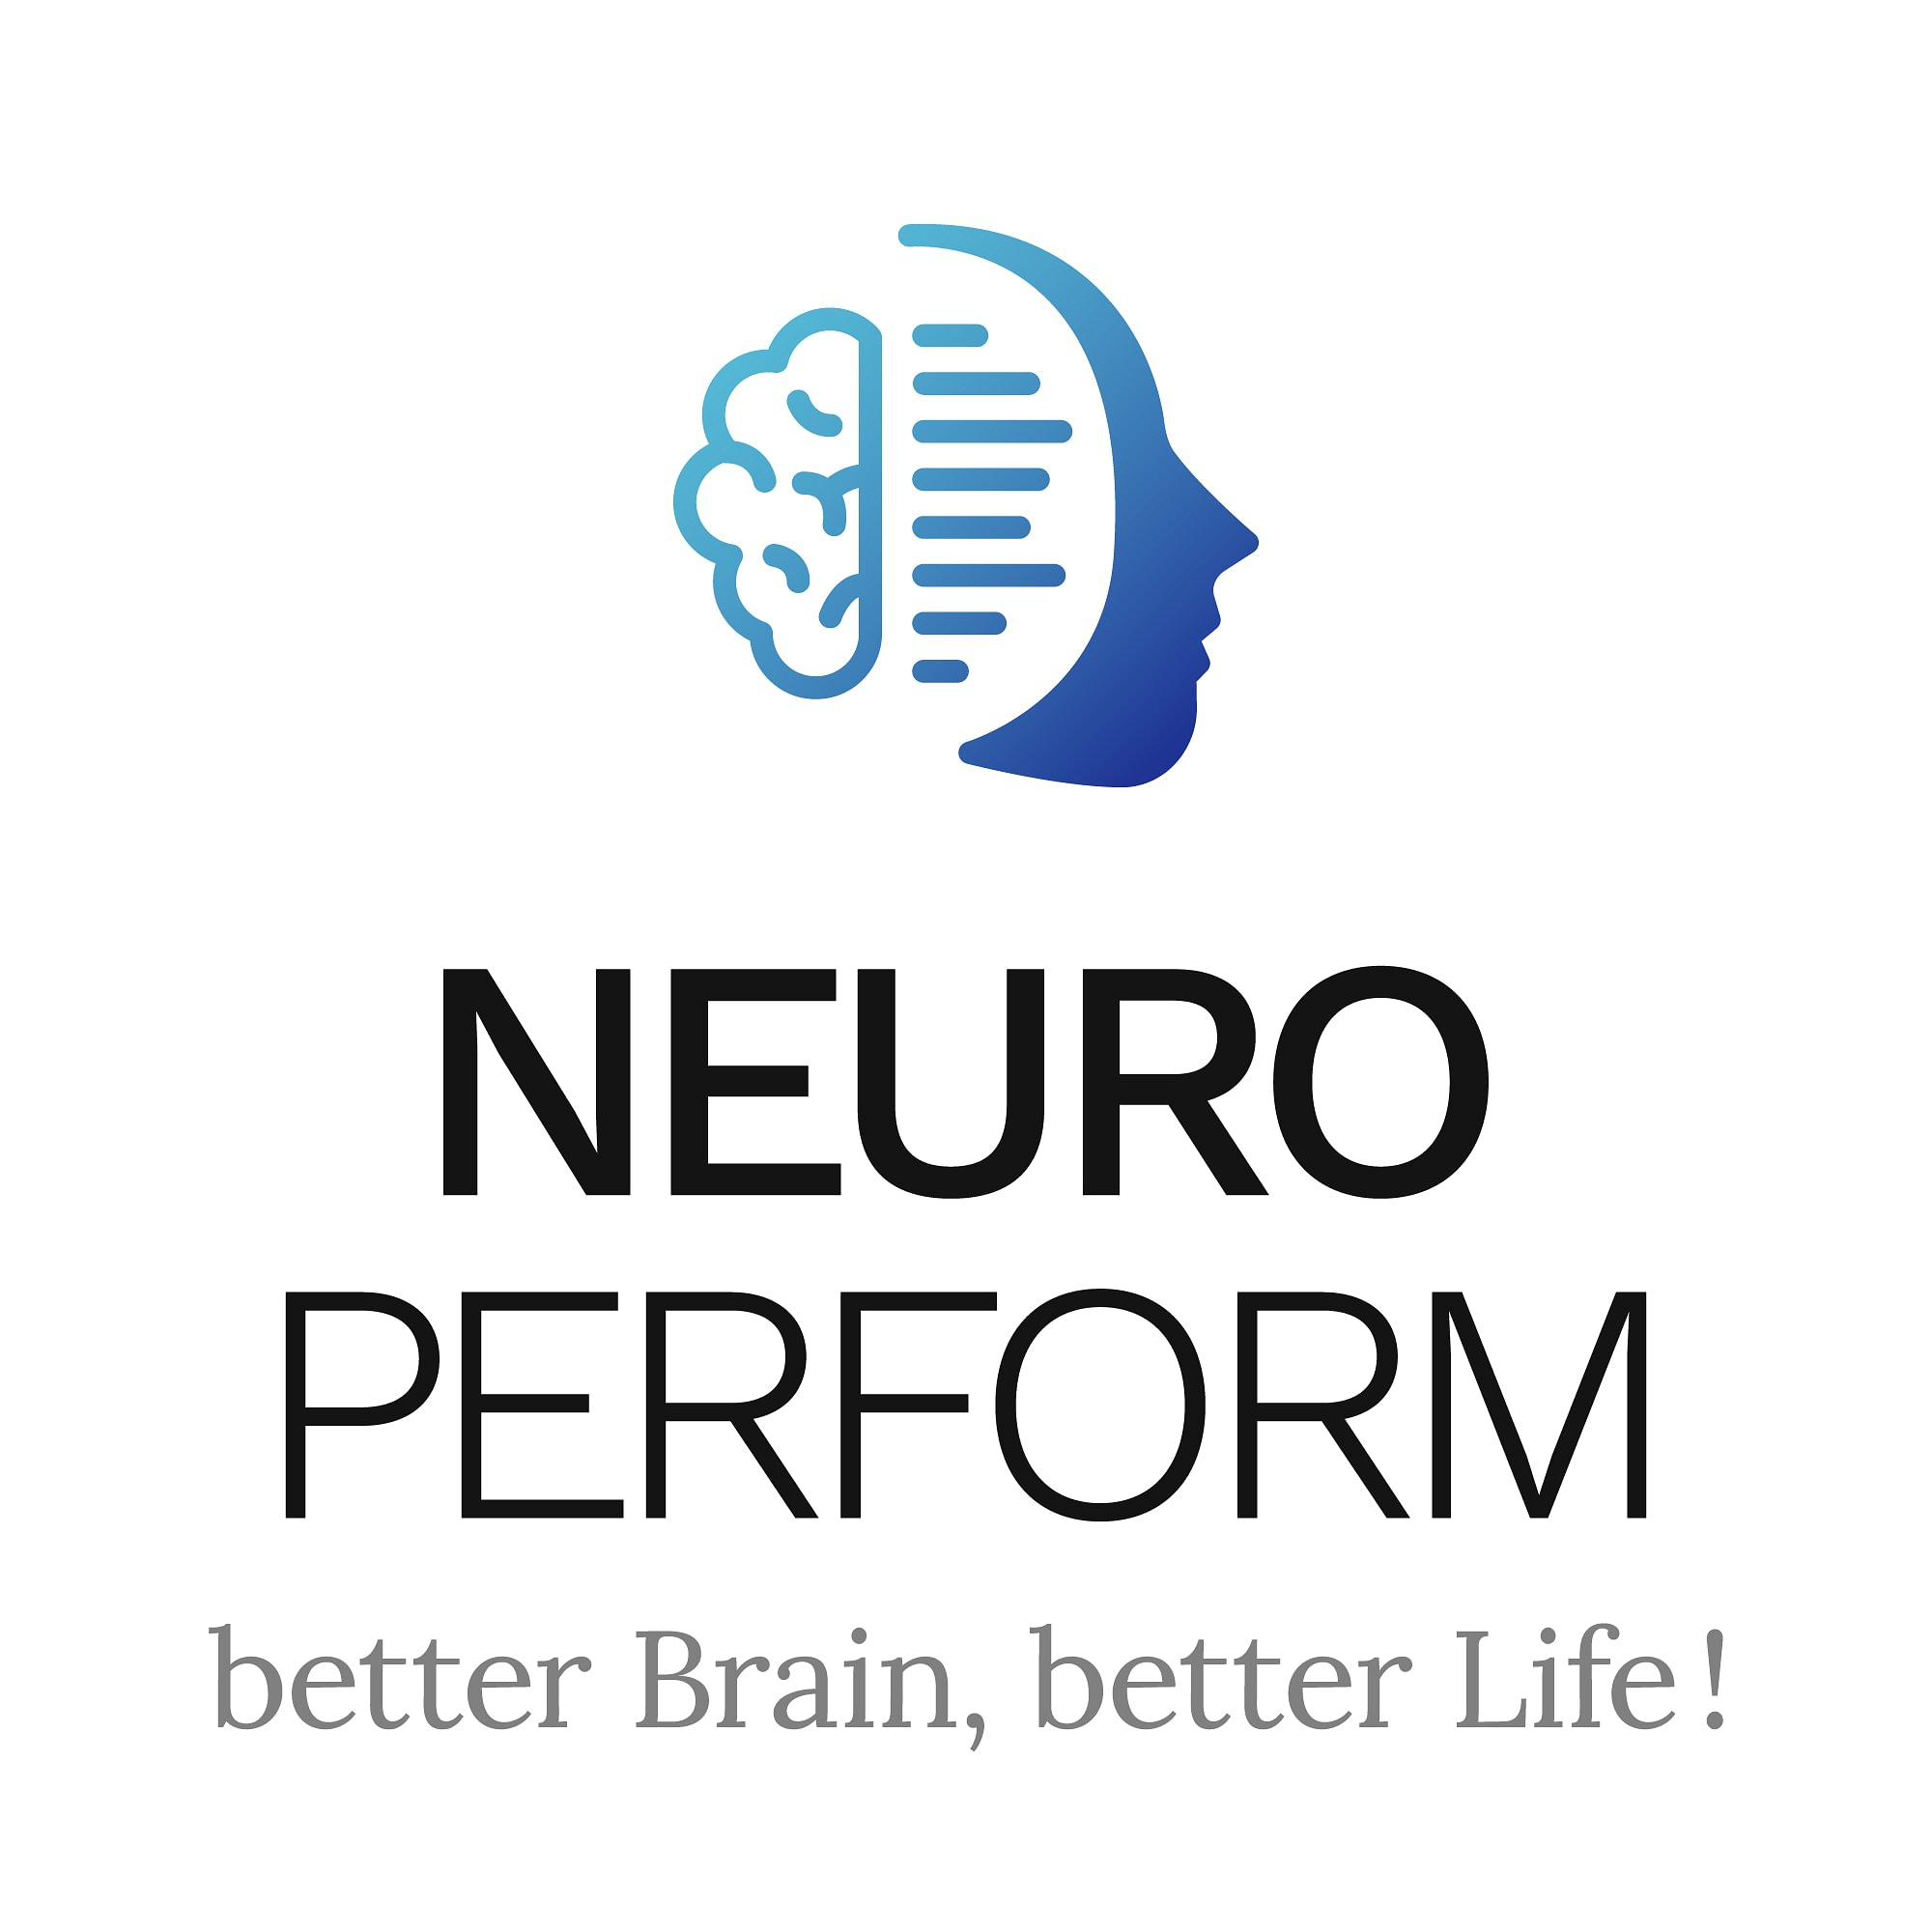 Neuroperform - Bio-Neurofeedback